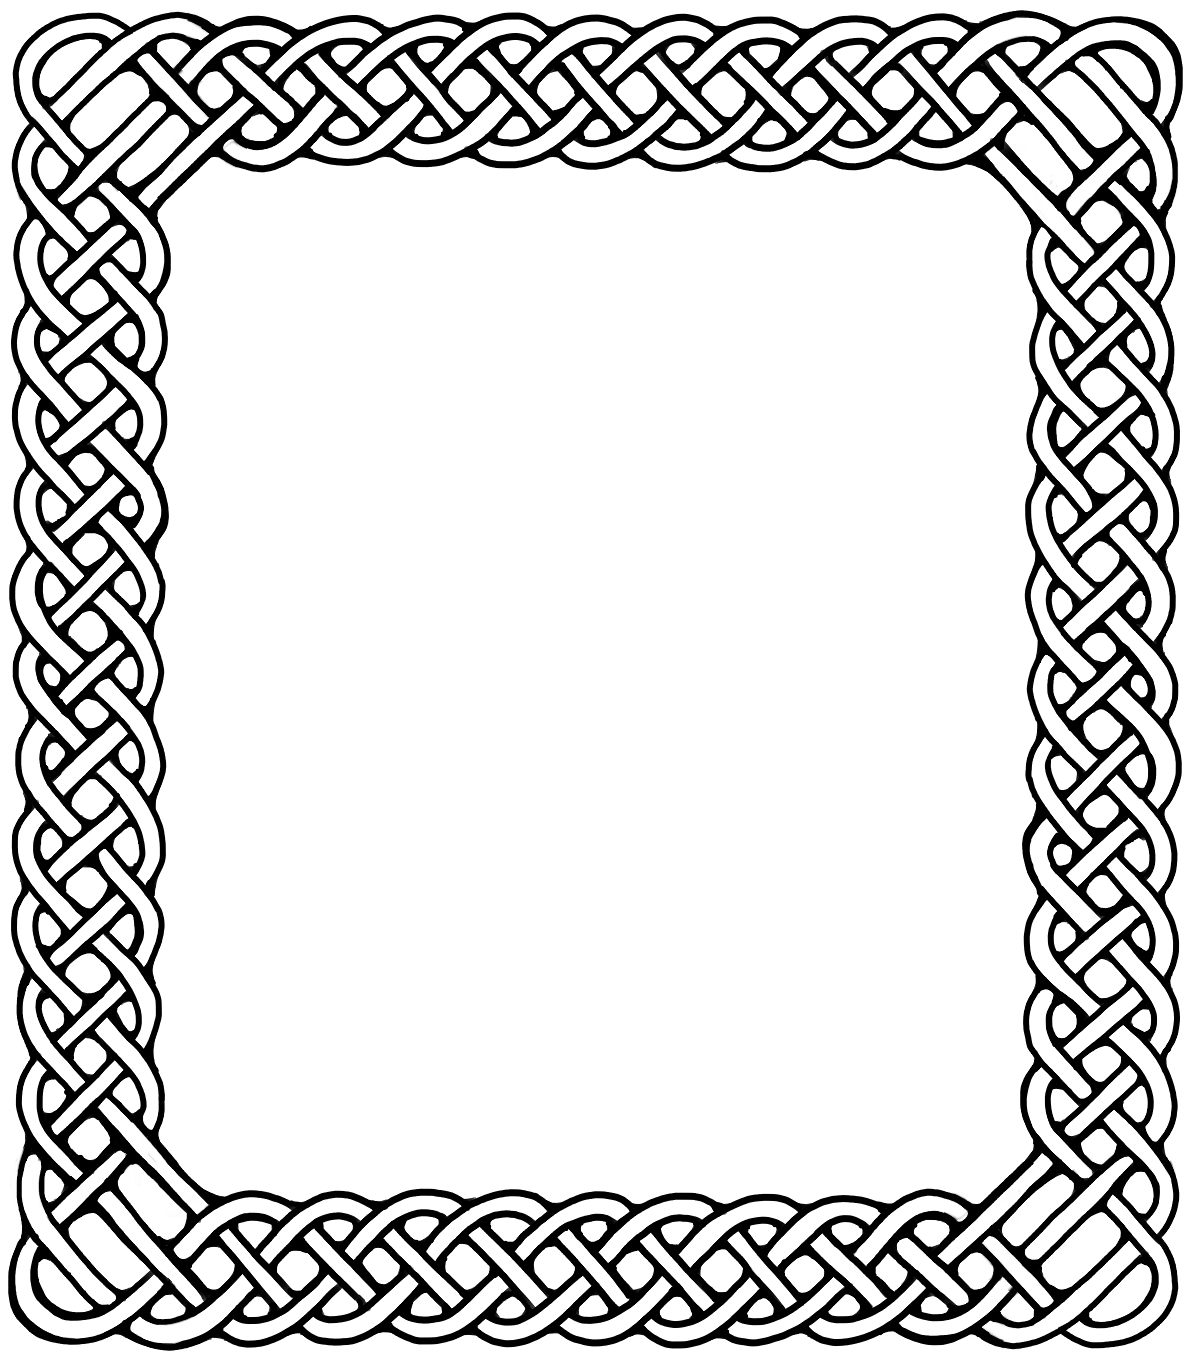 Celtic border stencil